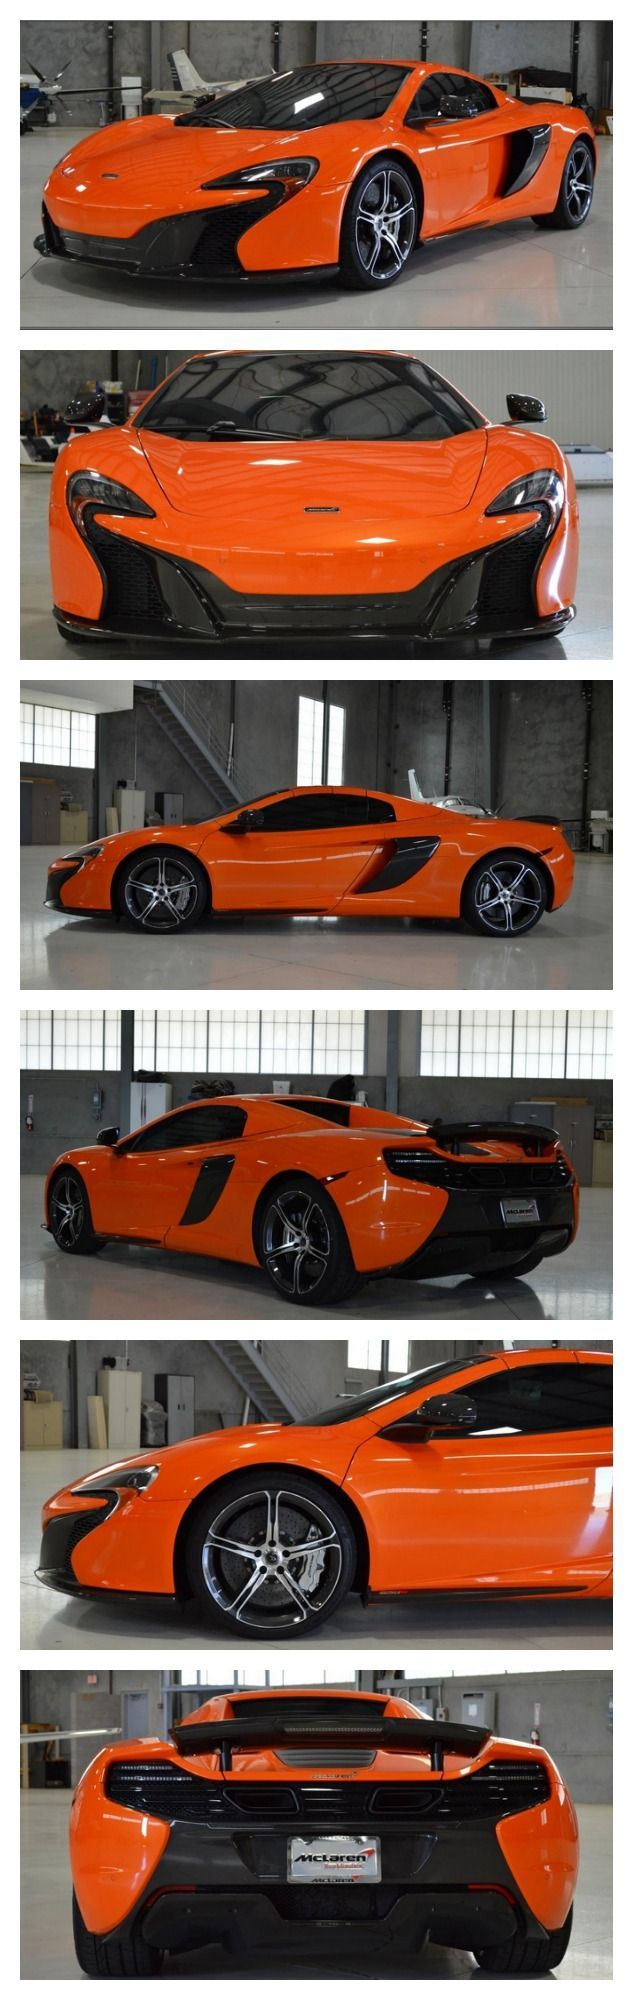 McLaren's latest offering? Check out the furiously fast McLaren 650S #Carpornhttps://www.amazon.co.uk/Baby-Car-Mirror-Shatterproof-Installation/dp/B06XHG6SSY